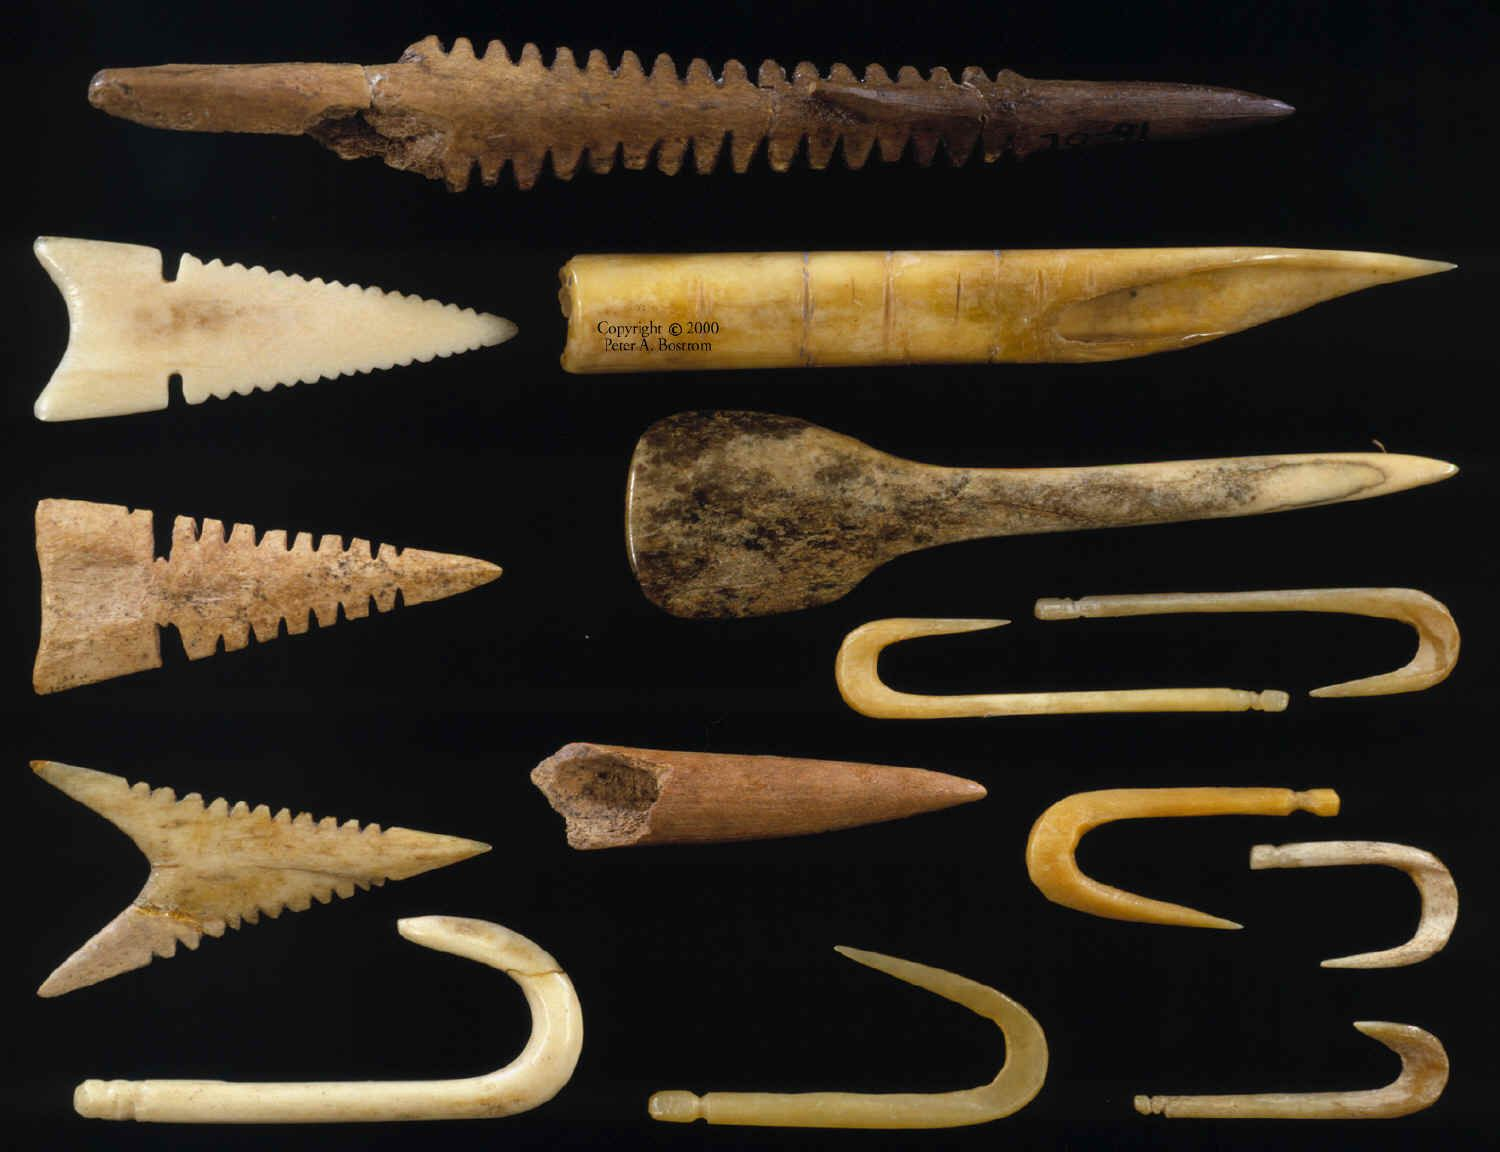 artifacts - arrowheads, pottery, and other objects that have